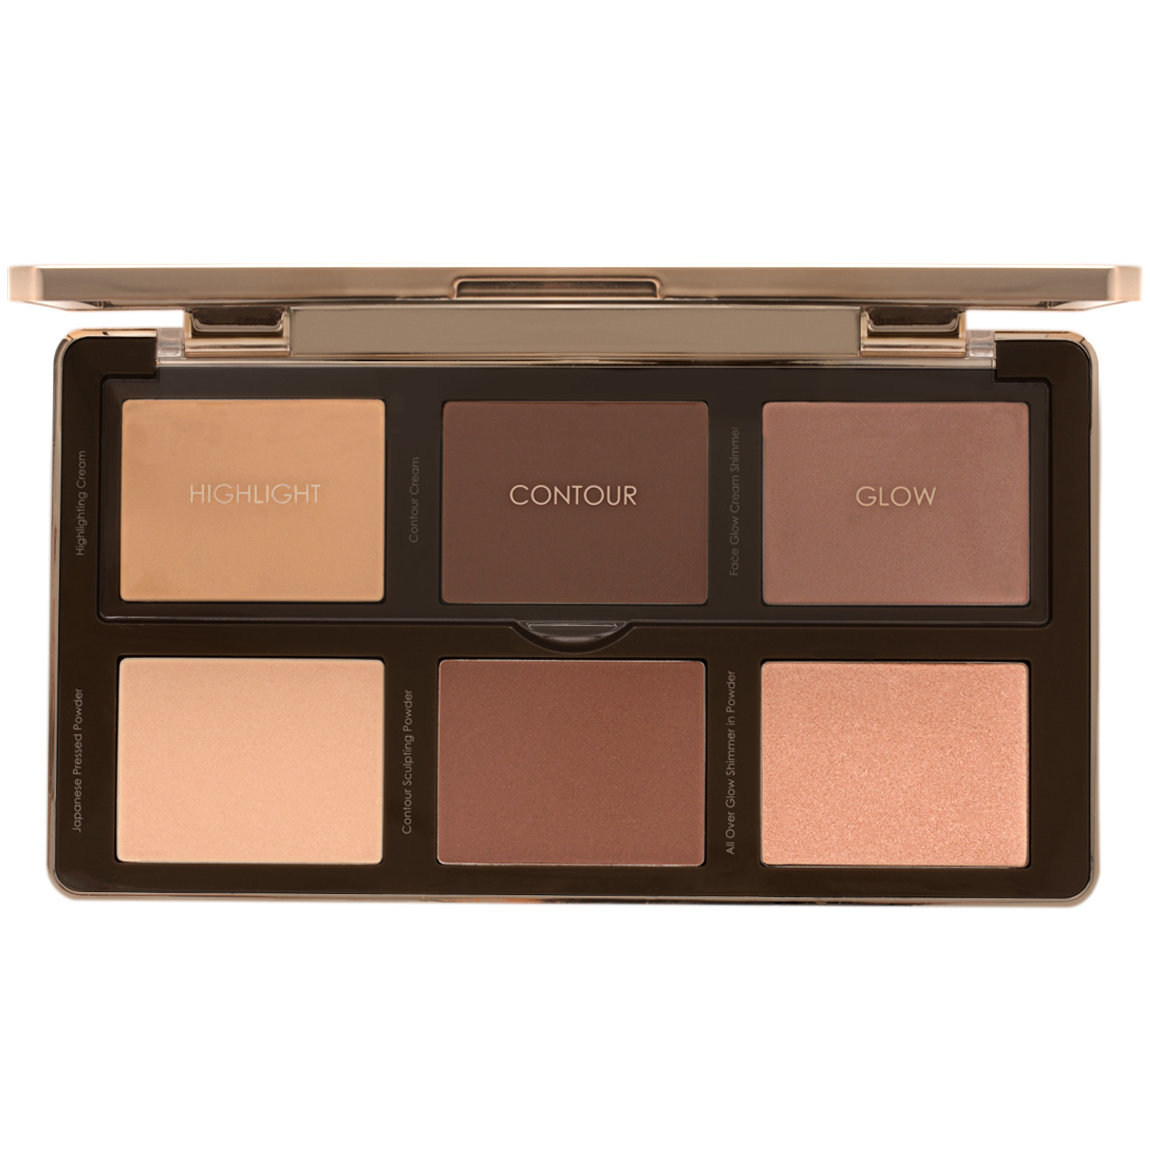 Natasha Denona Sculpt & Glow Palette Light - Medium product smear.